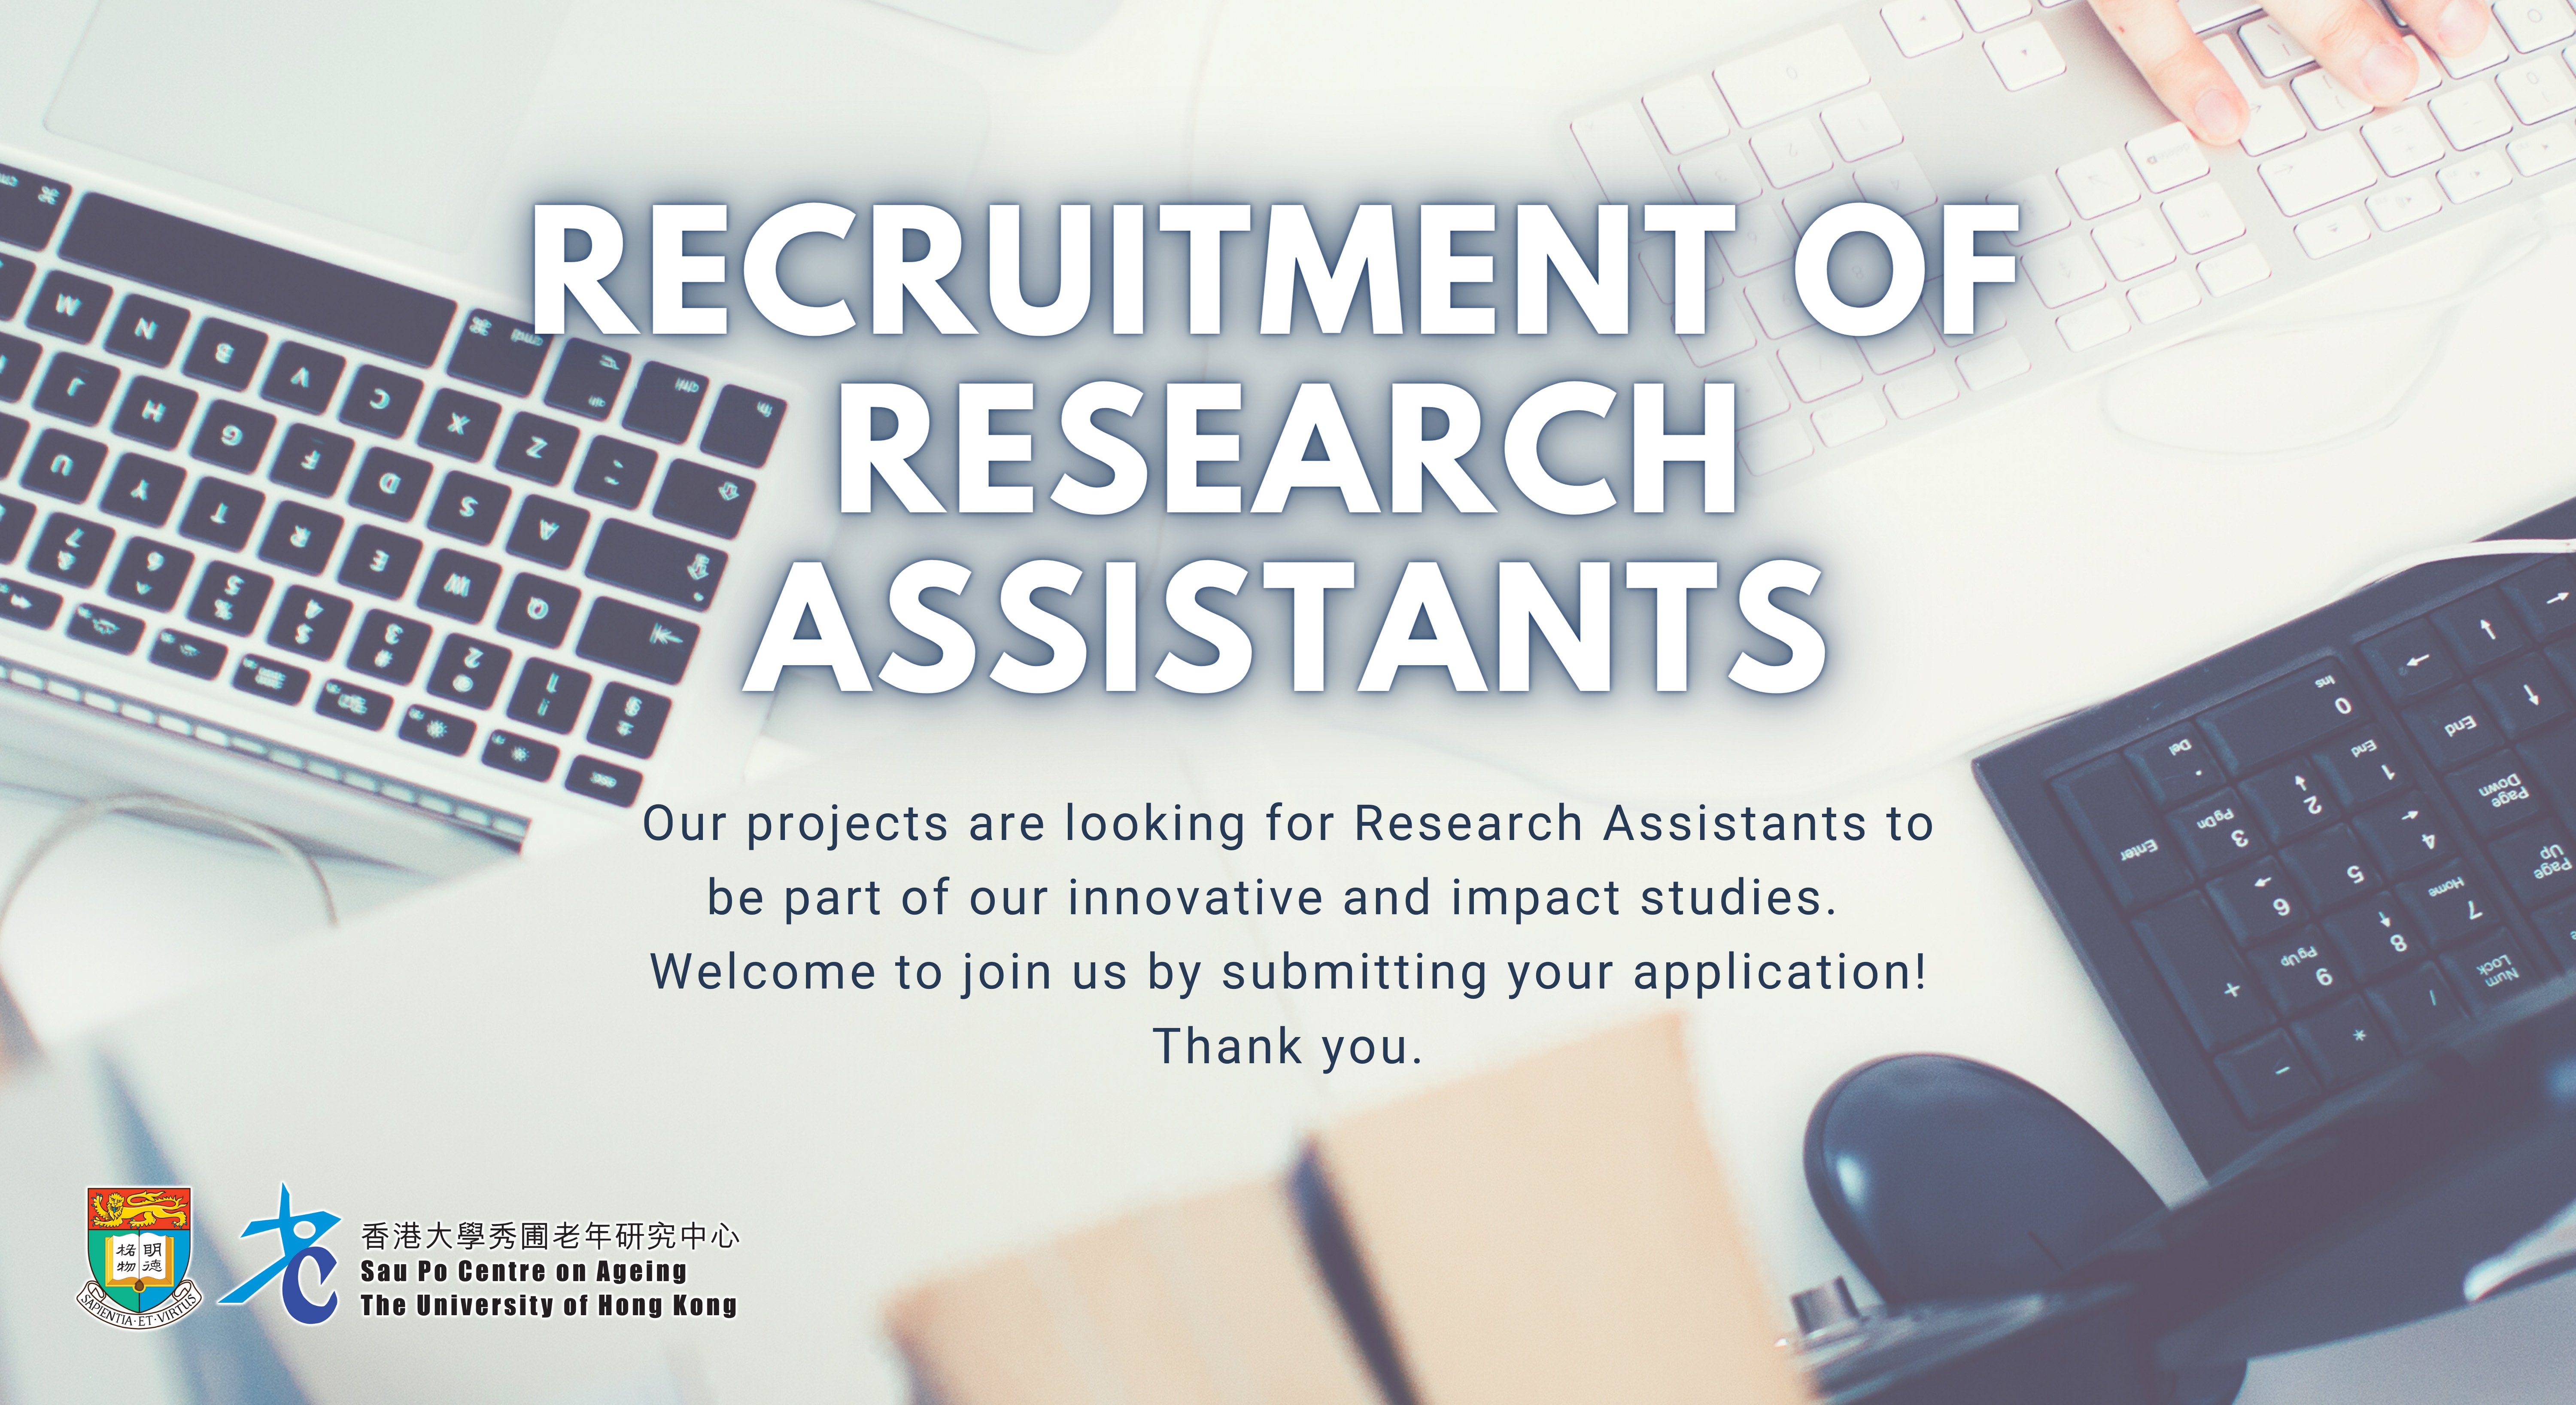 Recruitment of Research Assistants